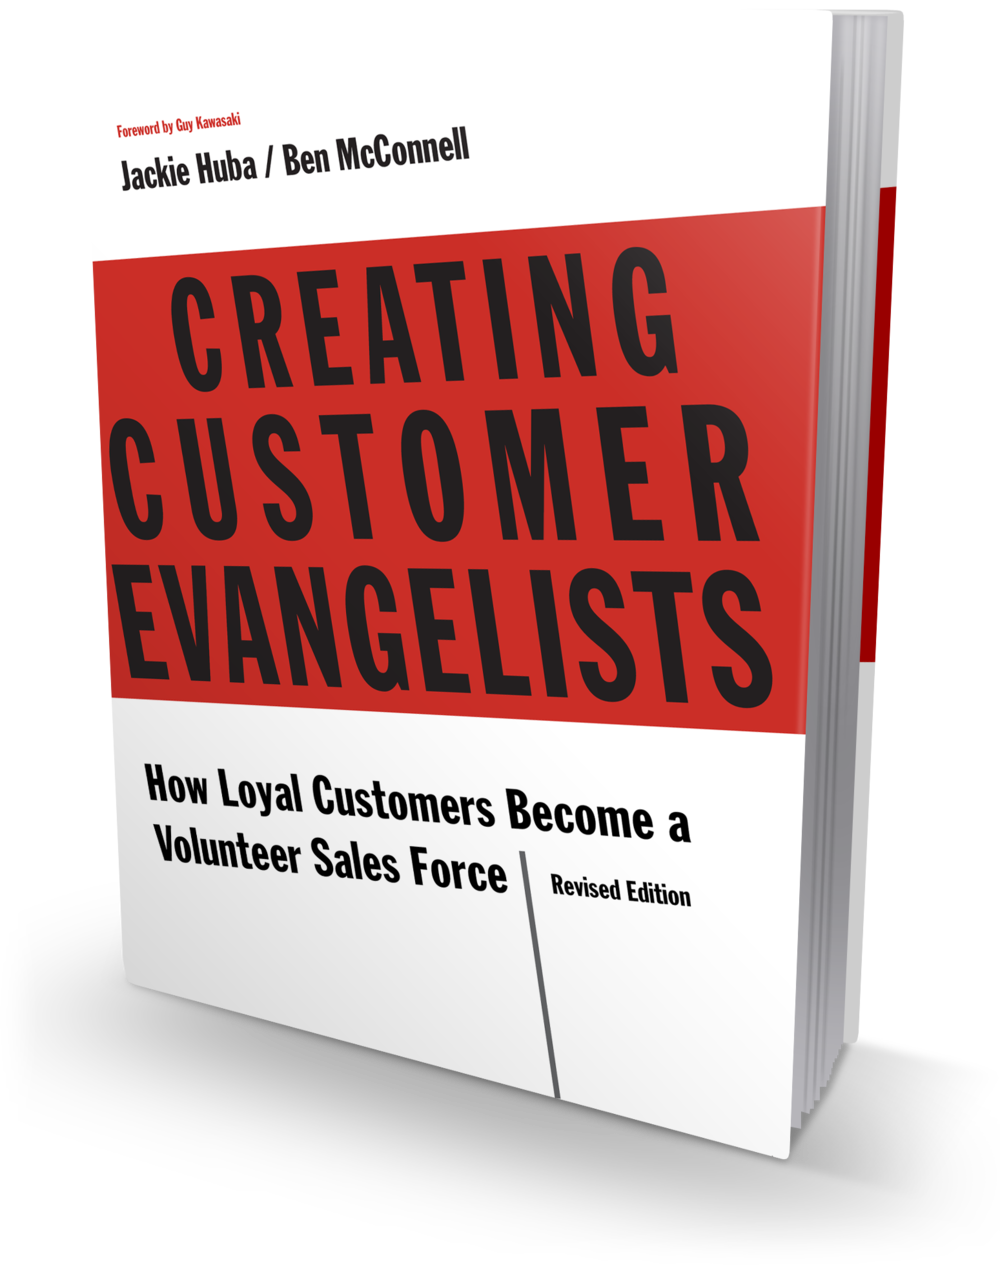 customer_evangelists_cover - lg.png